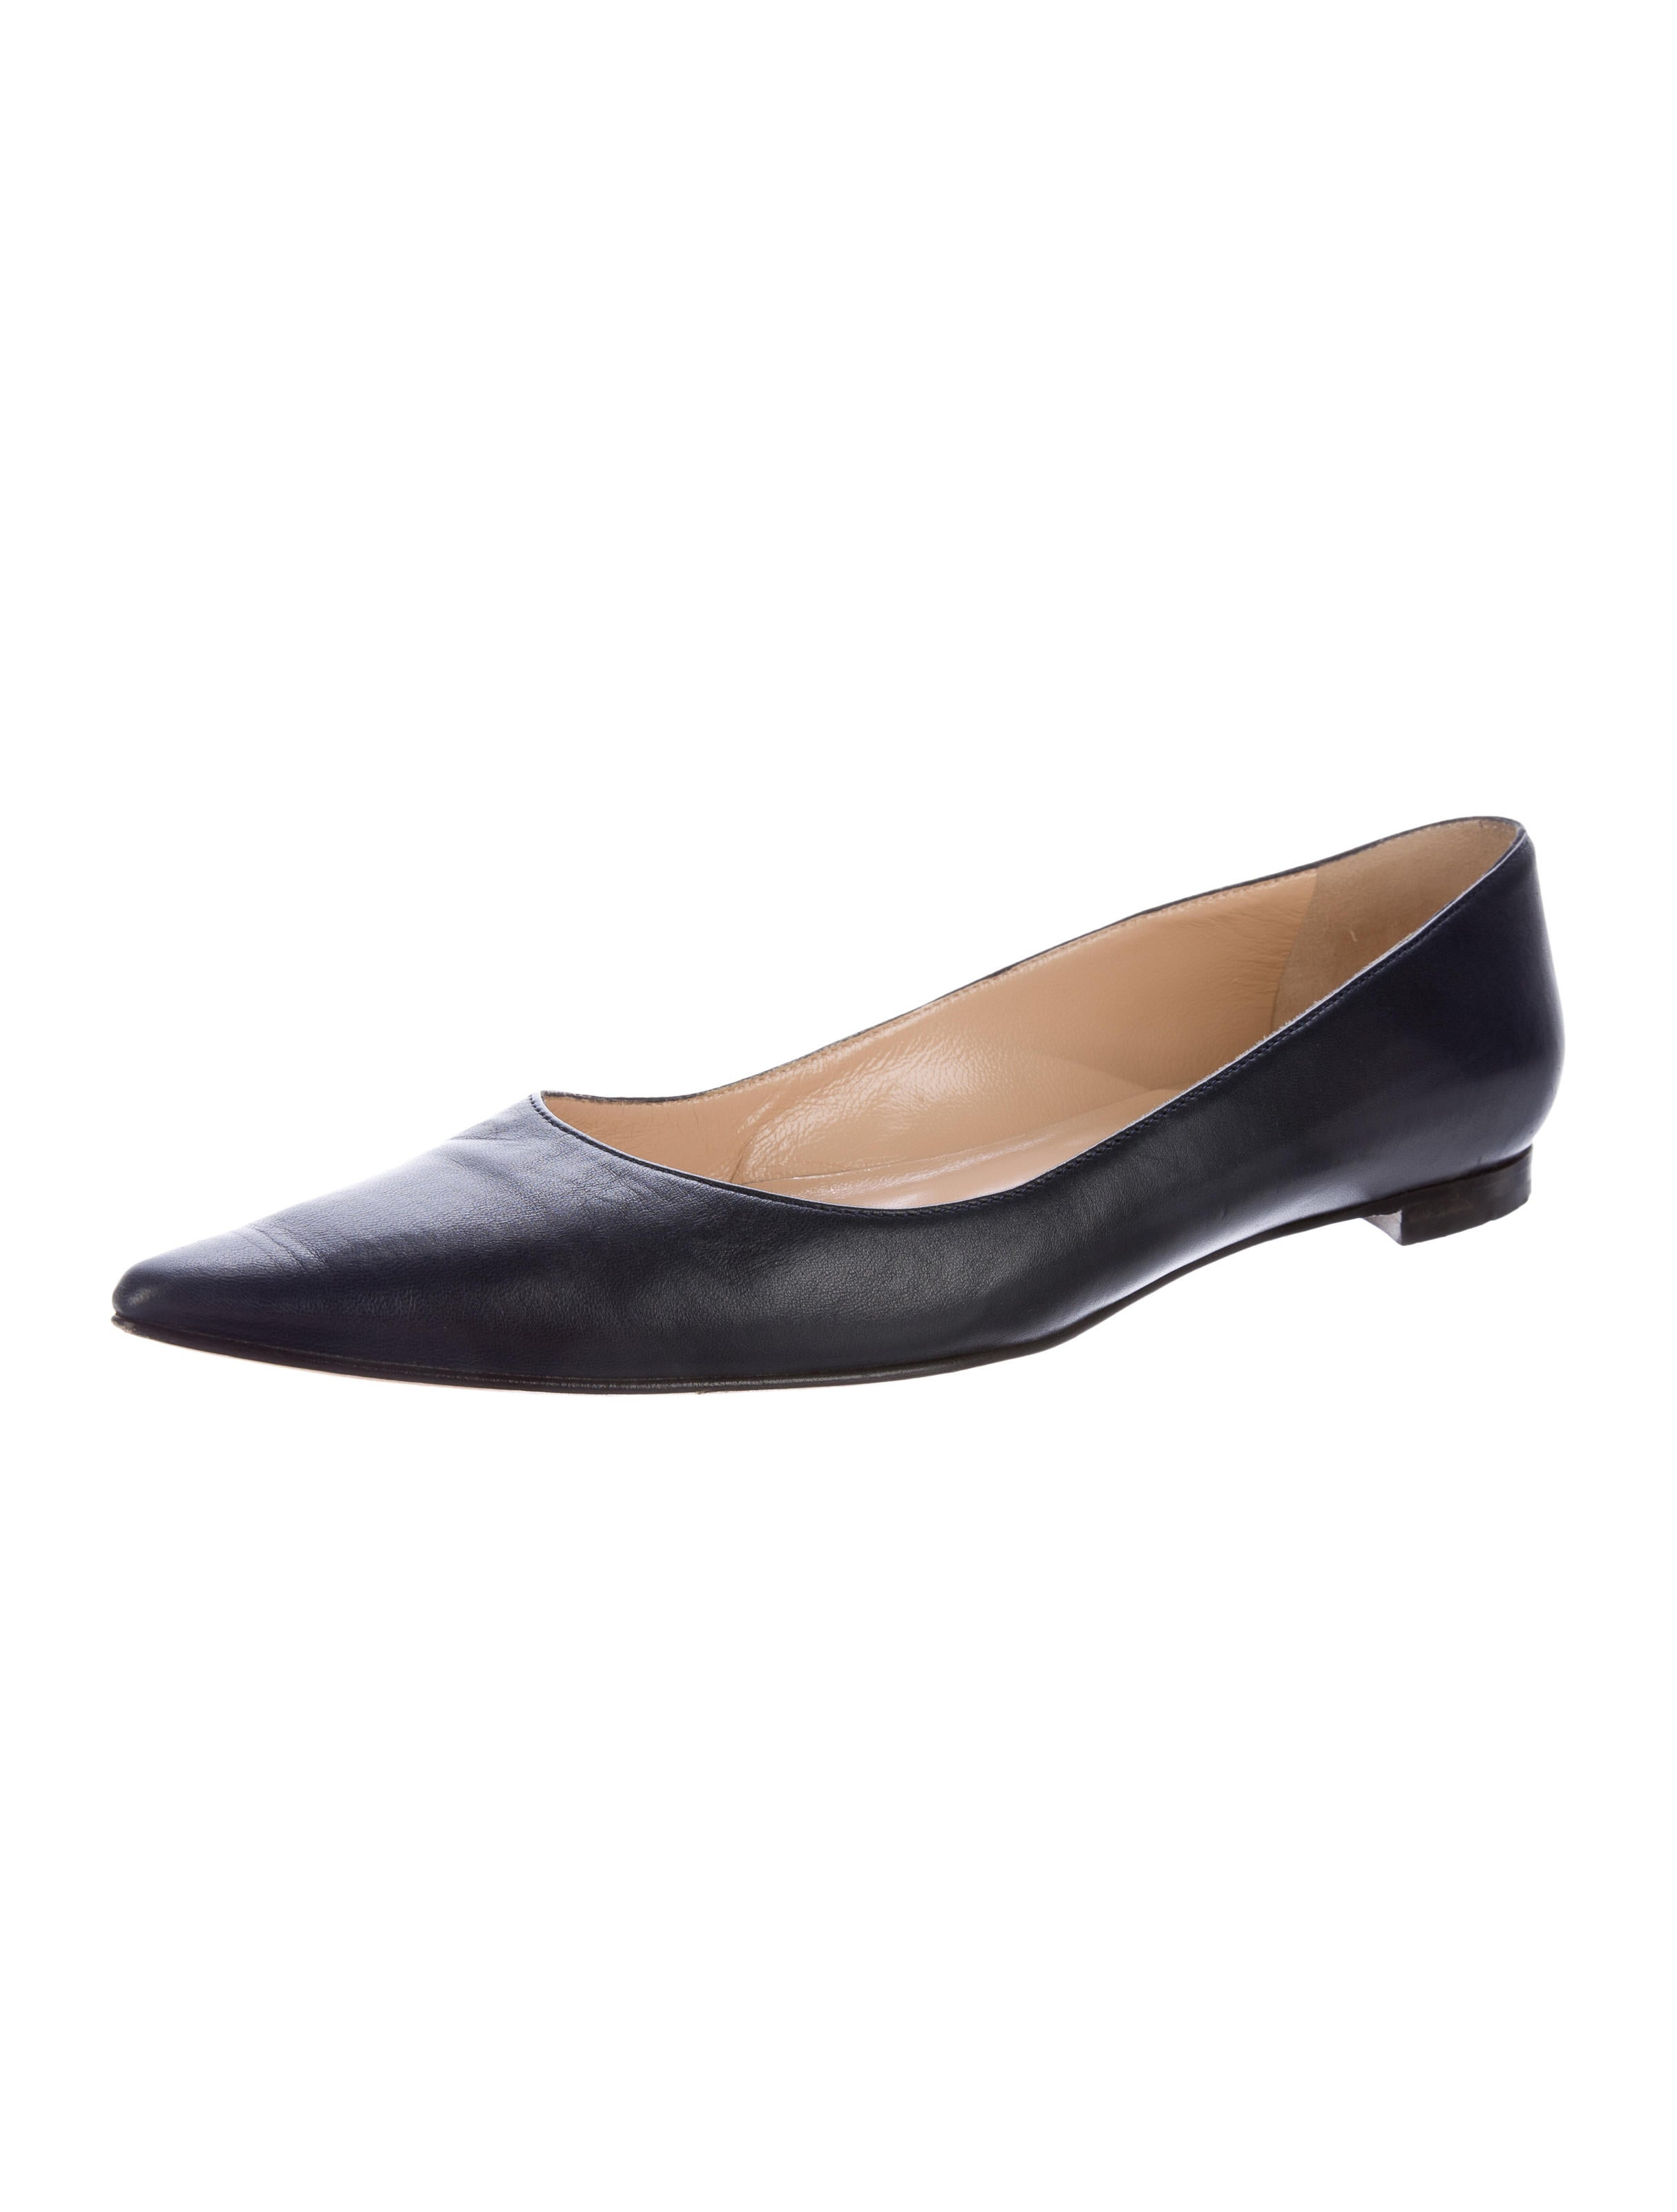 manolo blahnik leather pointed toe flats shoes